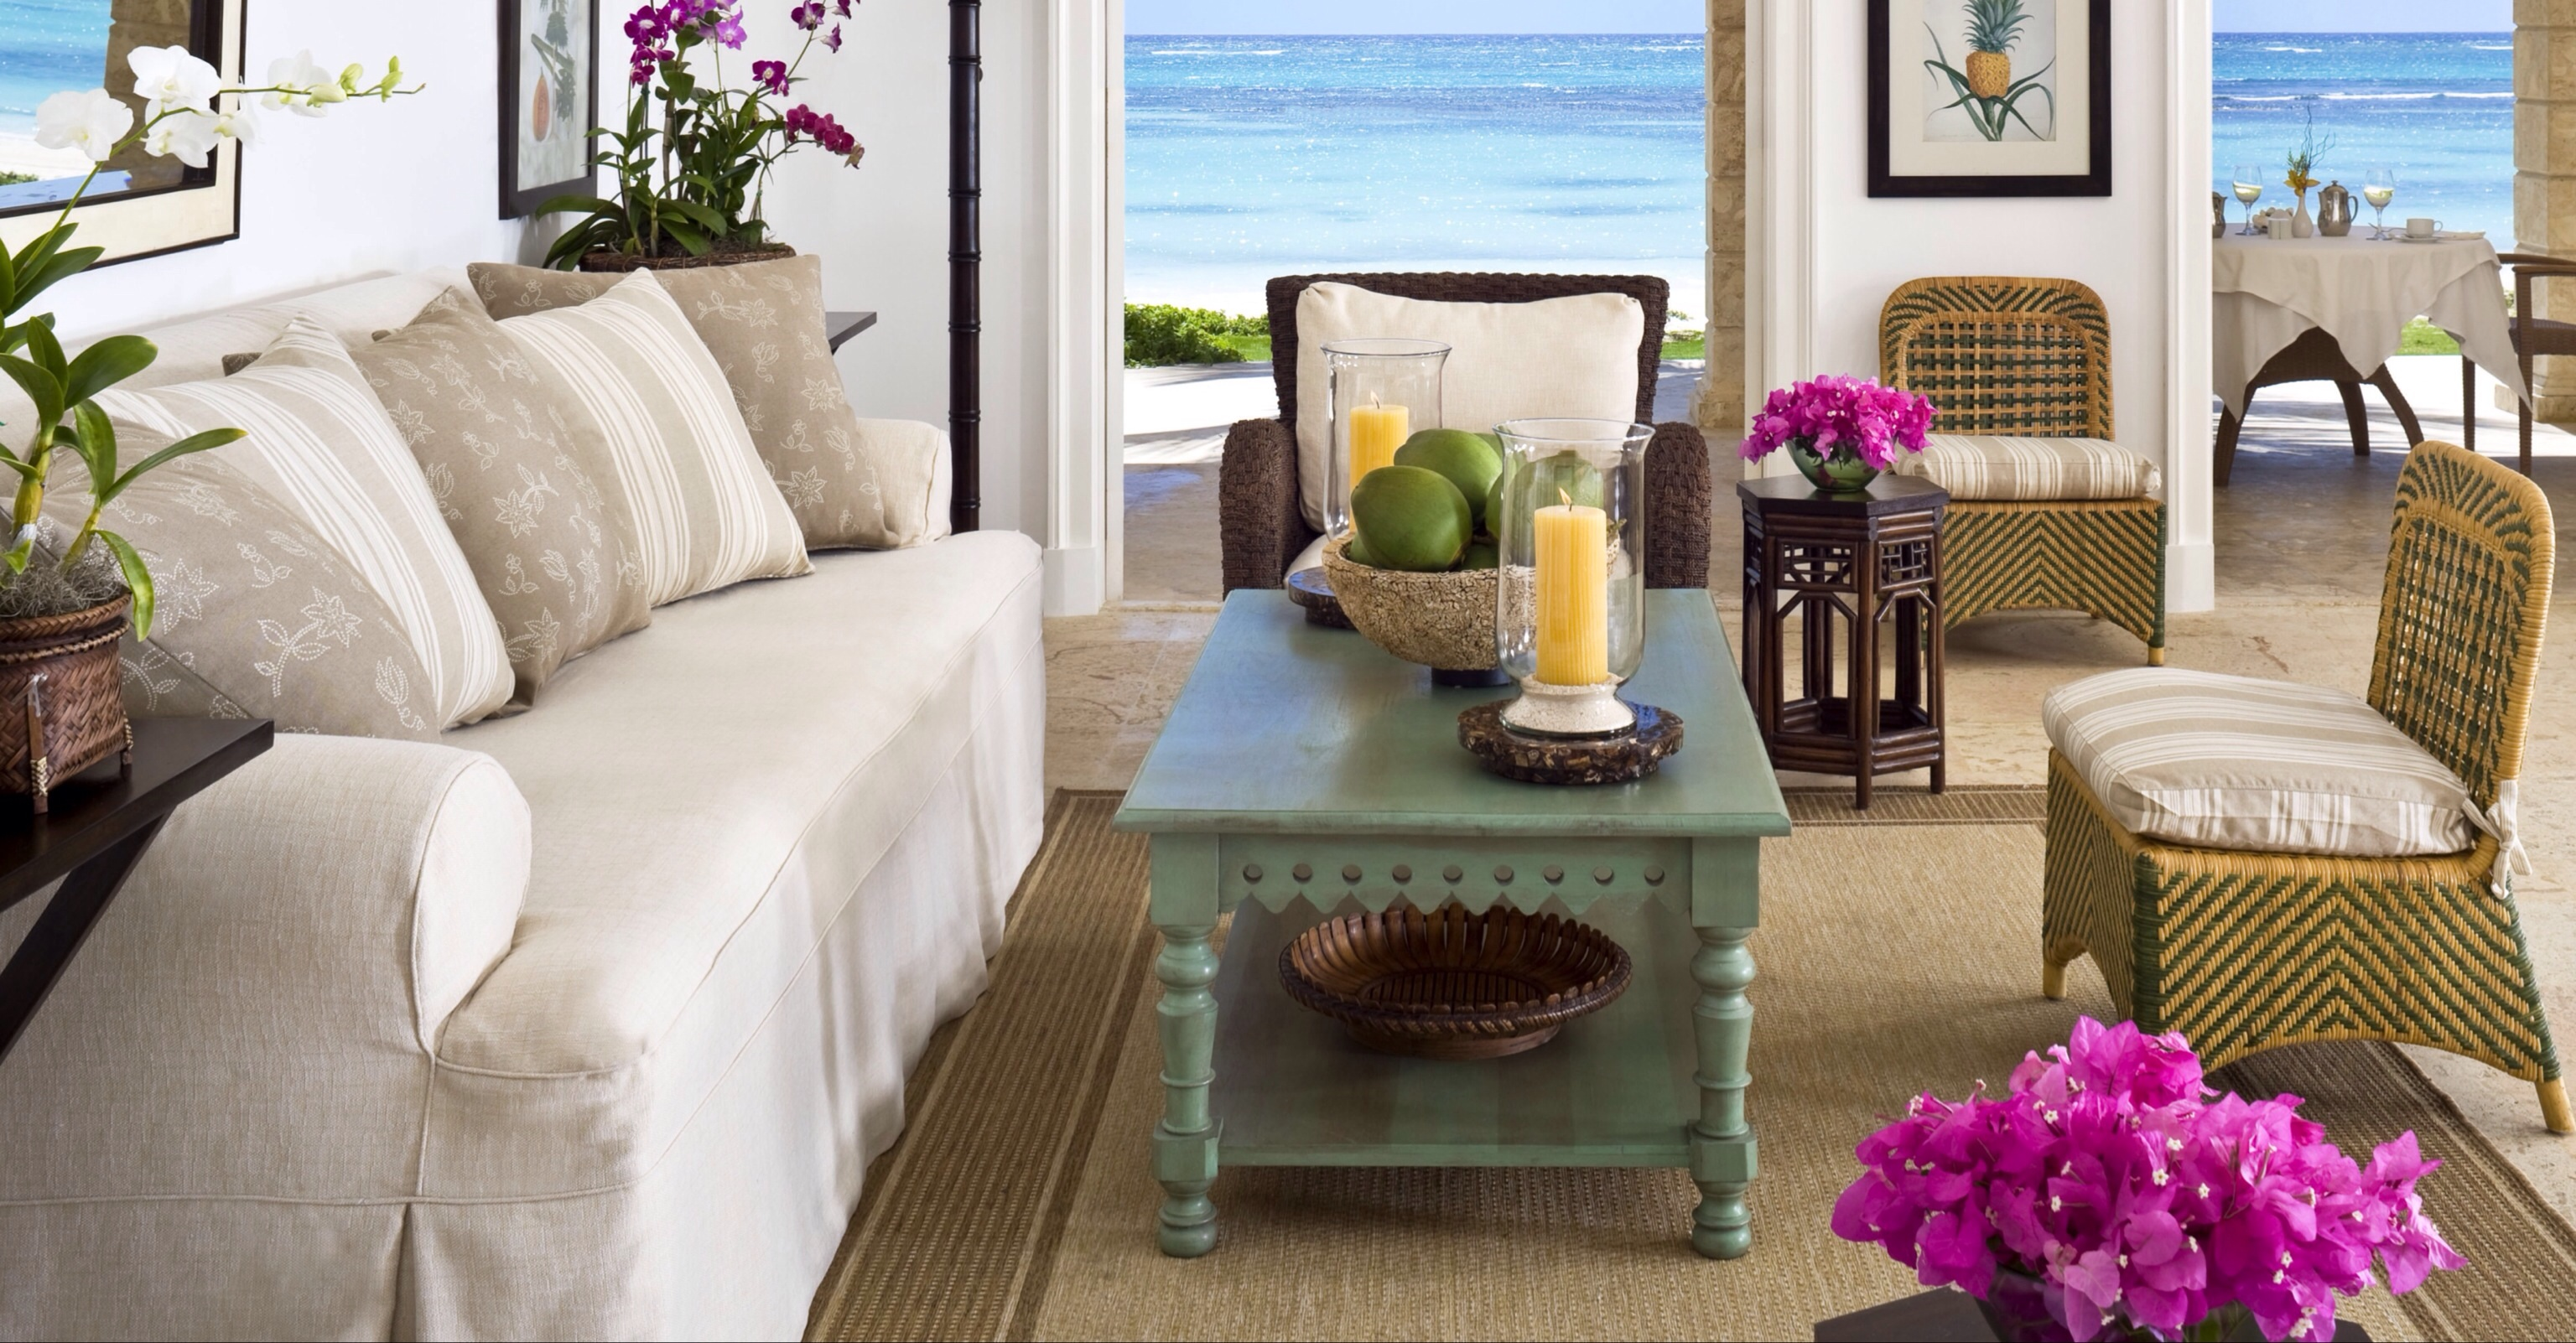 Interior design tips for vacation homes for Vacation home interior design